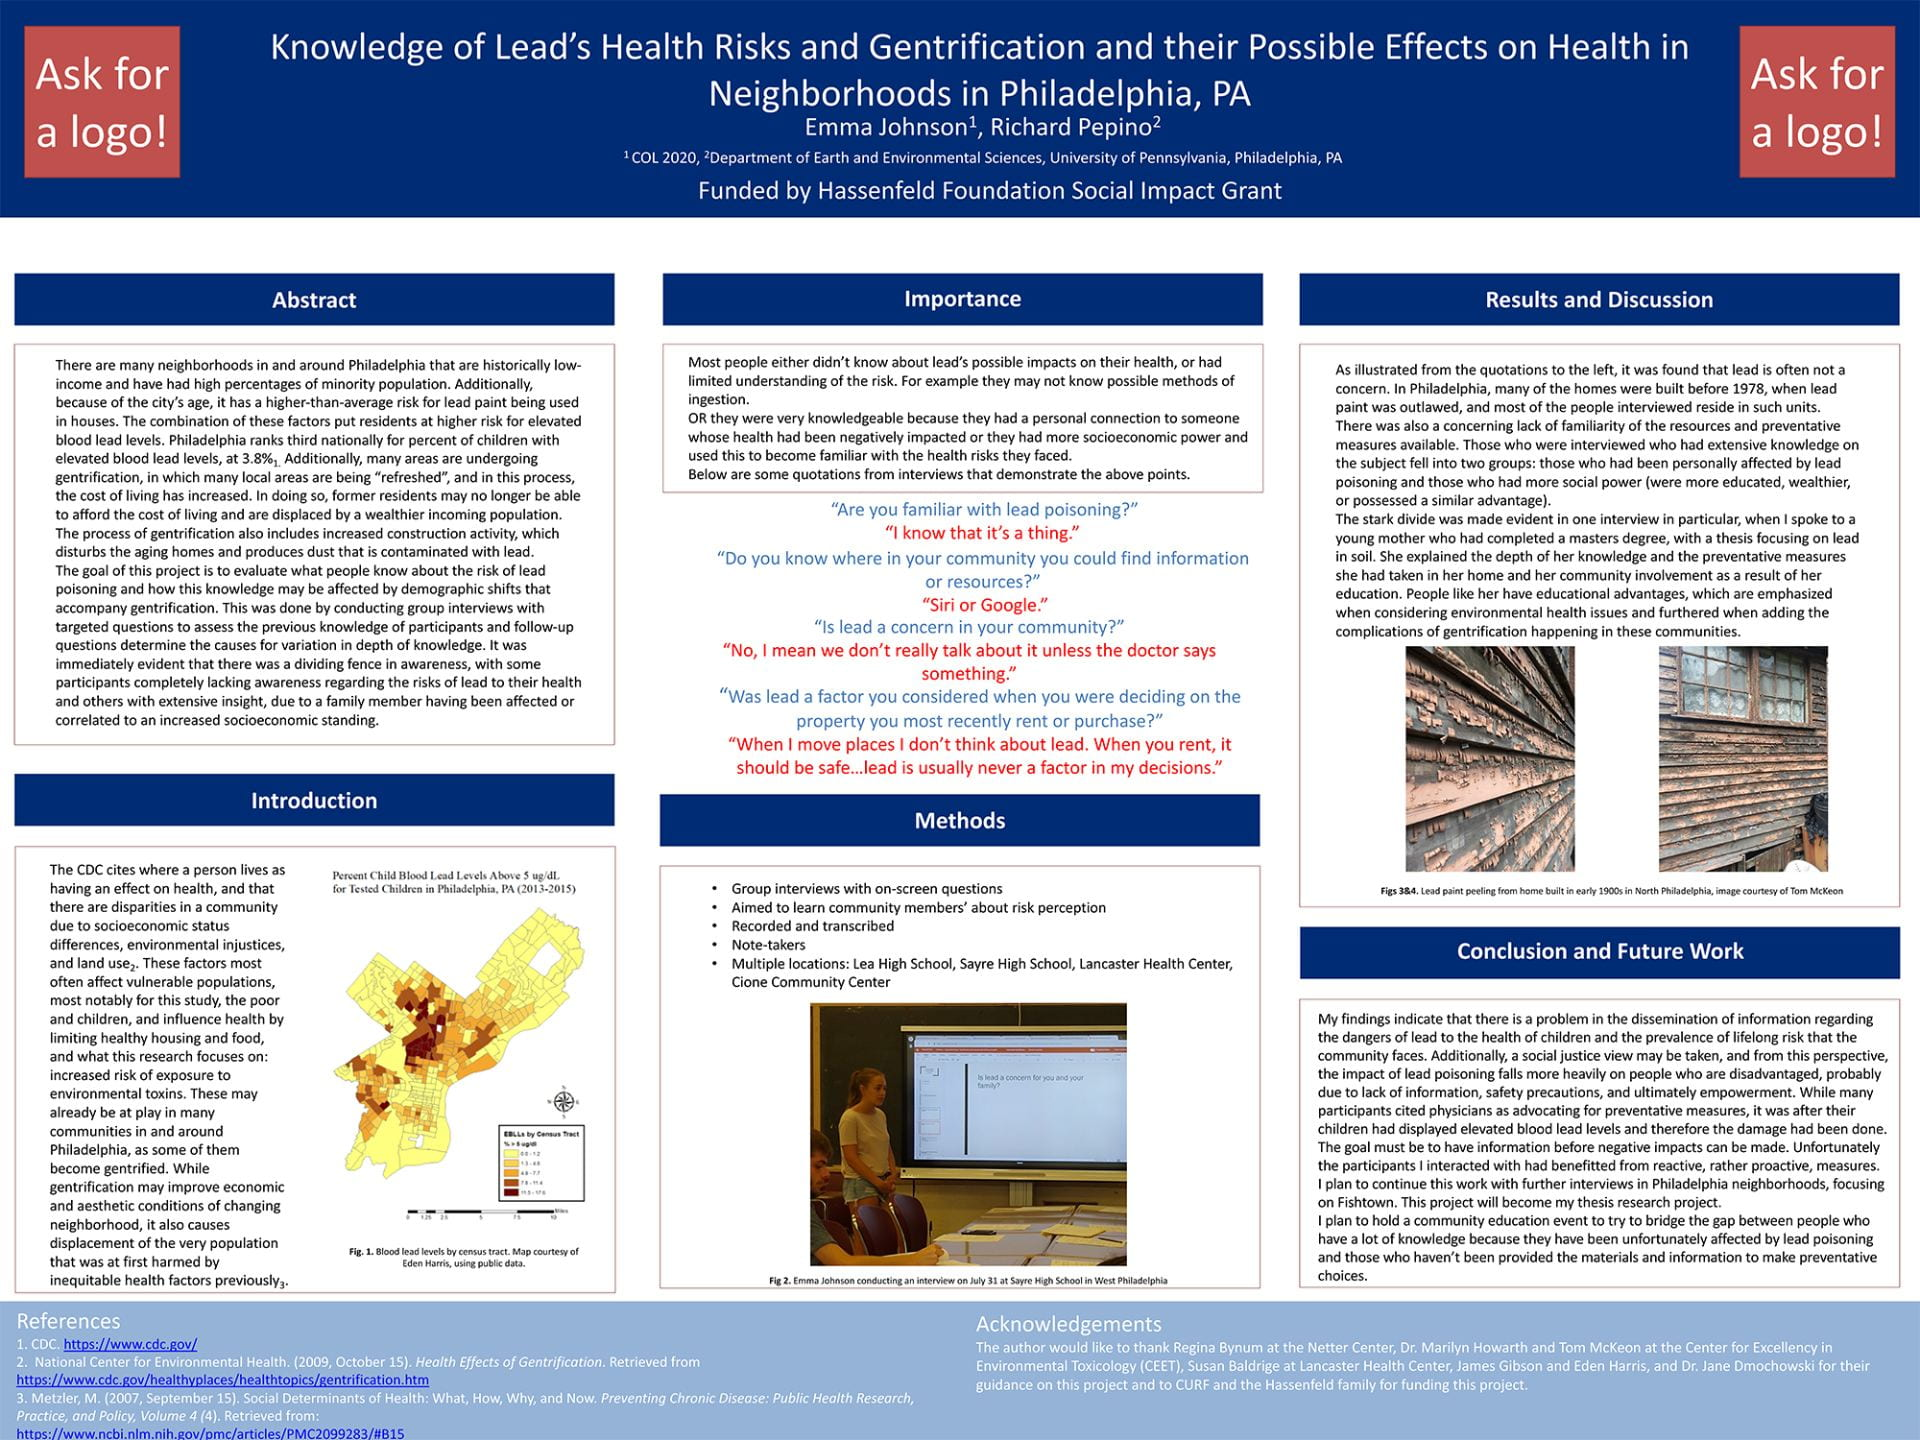 Lead and Gentrification Poster